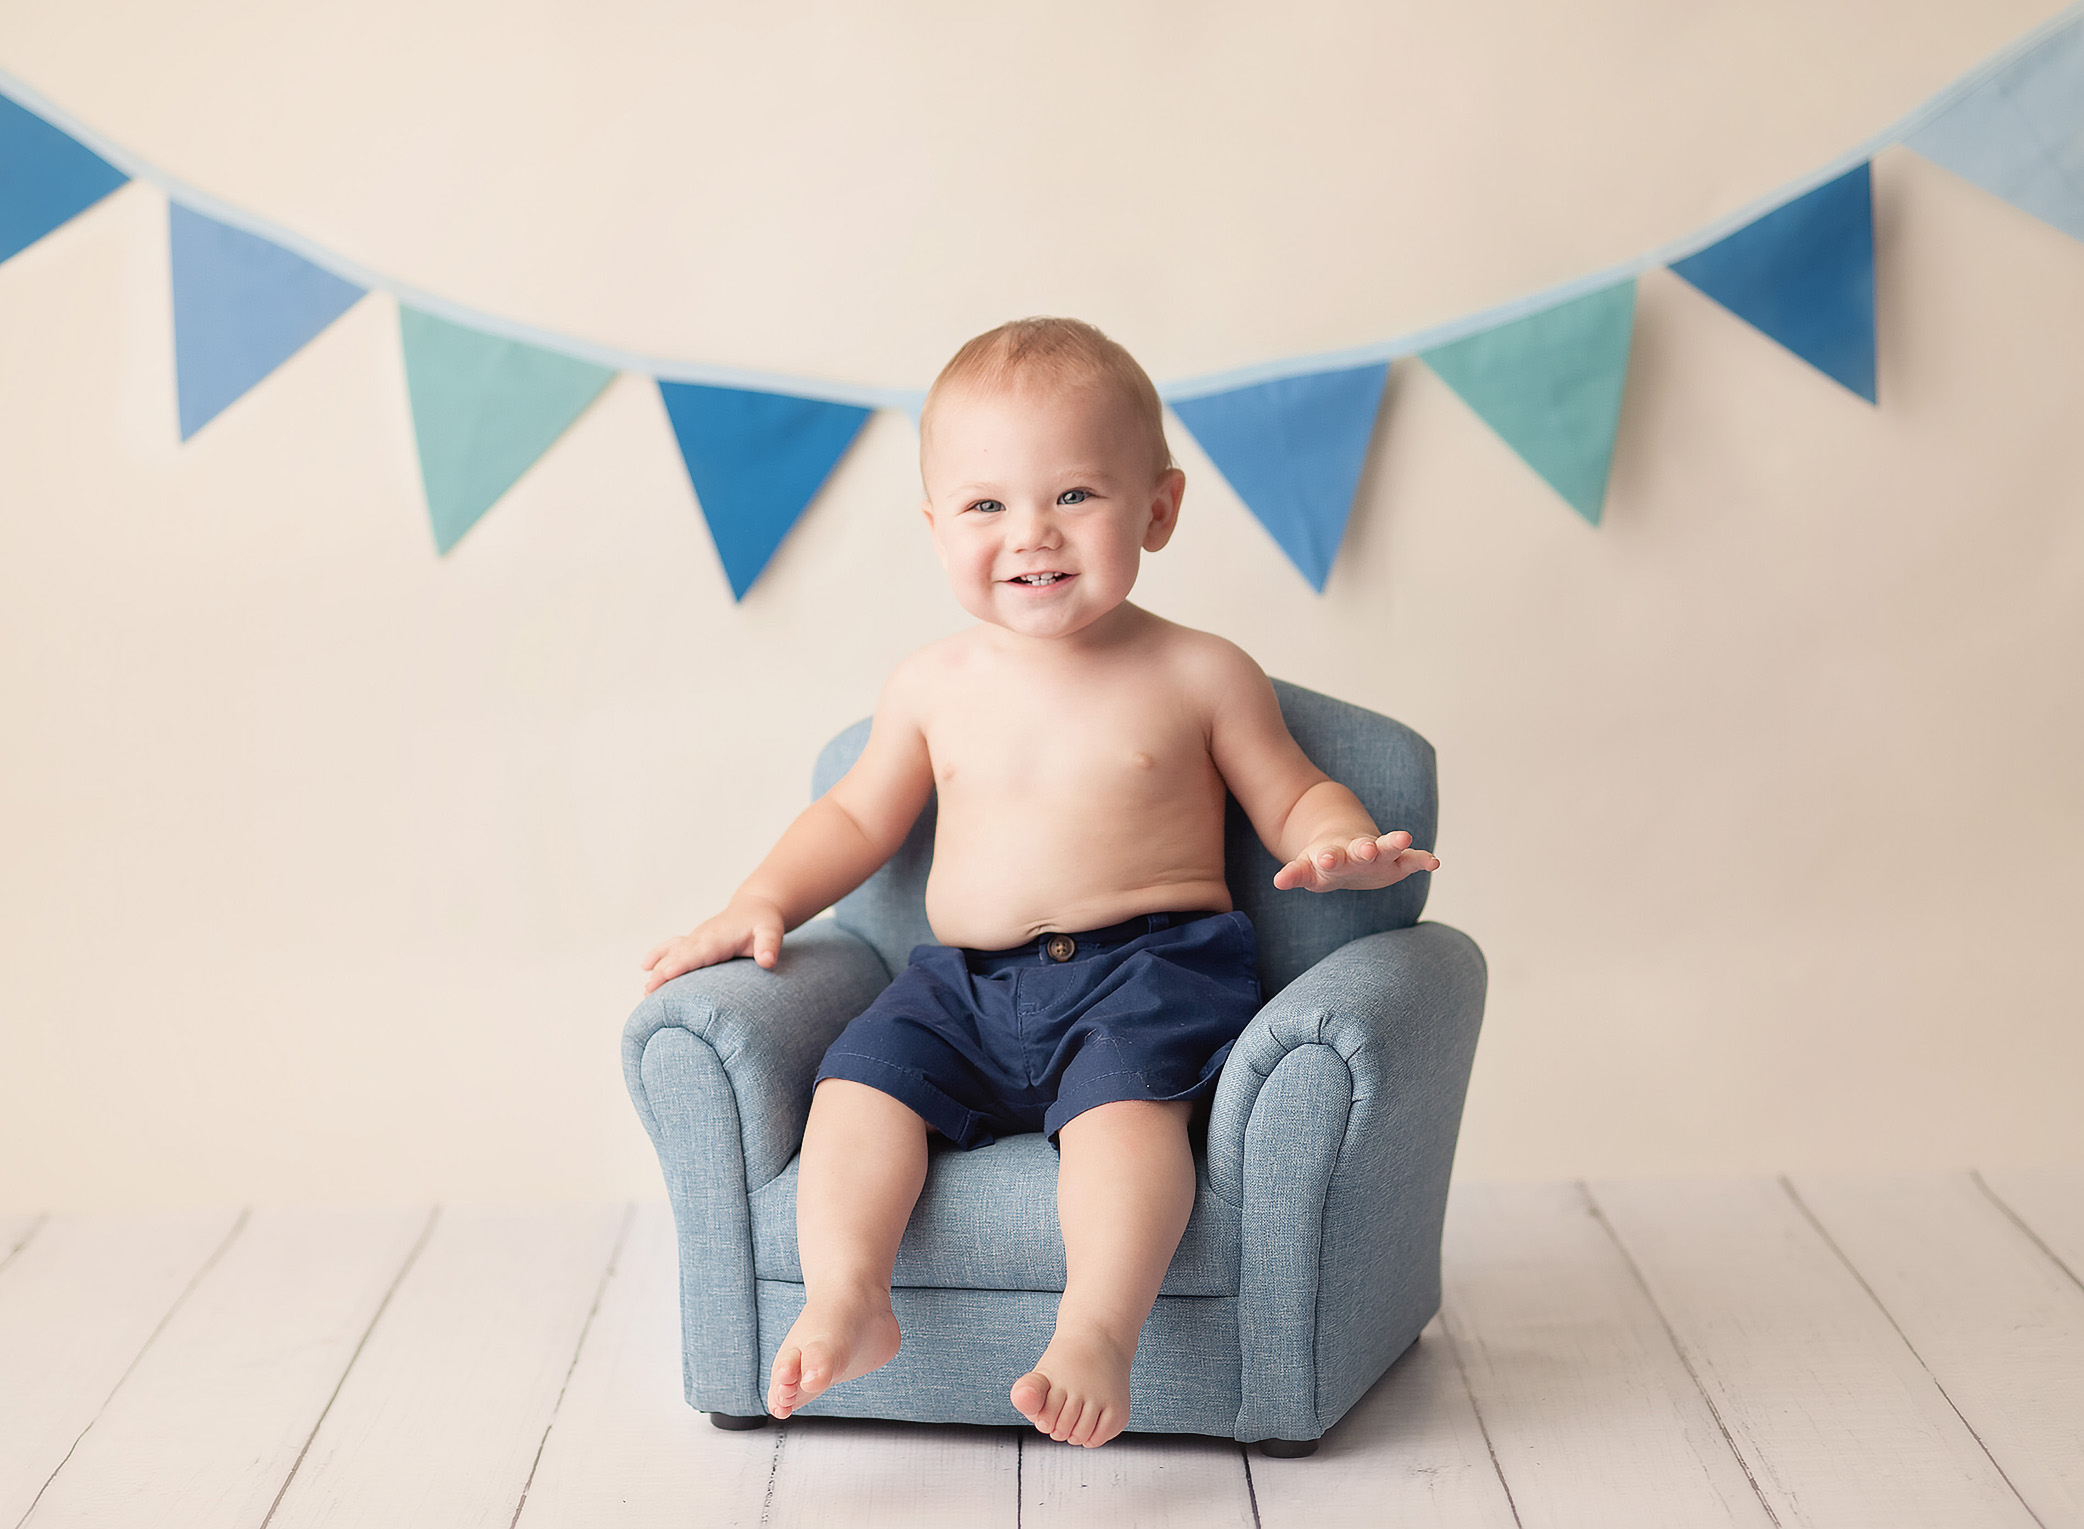 baby sitting on blue chair under flag banner